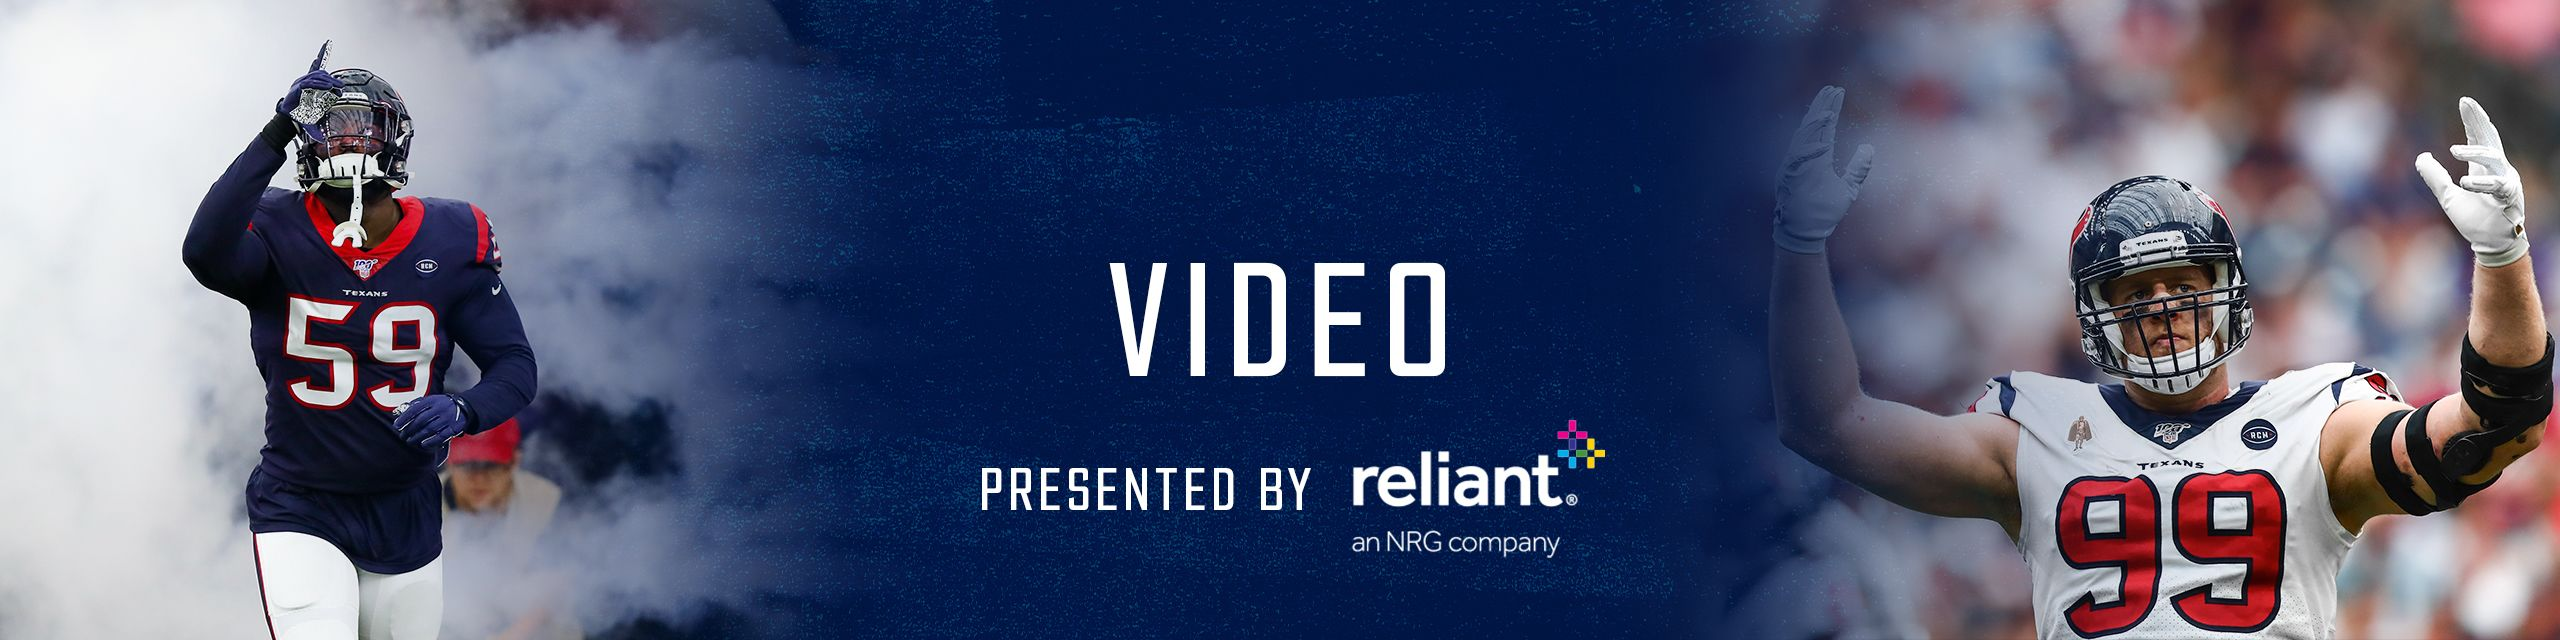 Video. presented by Reliant